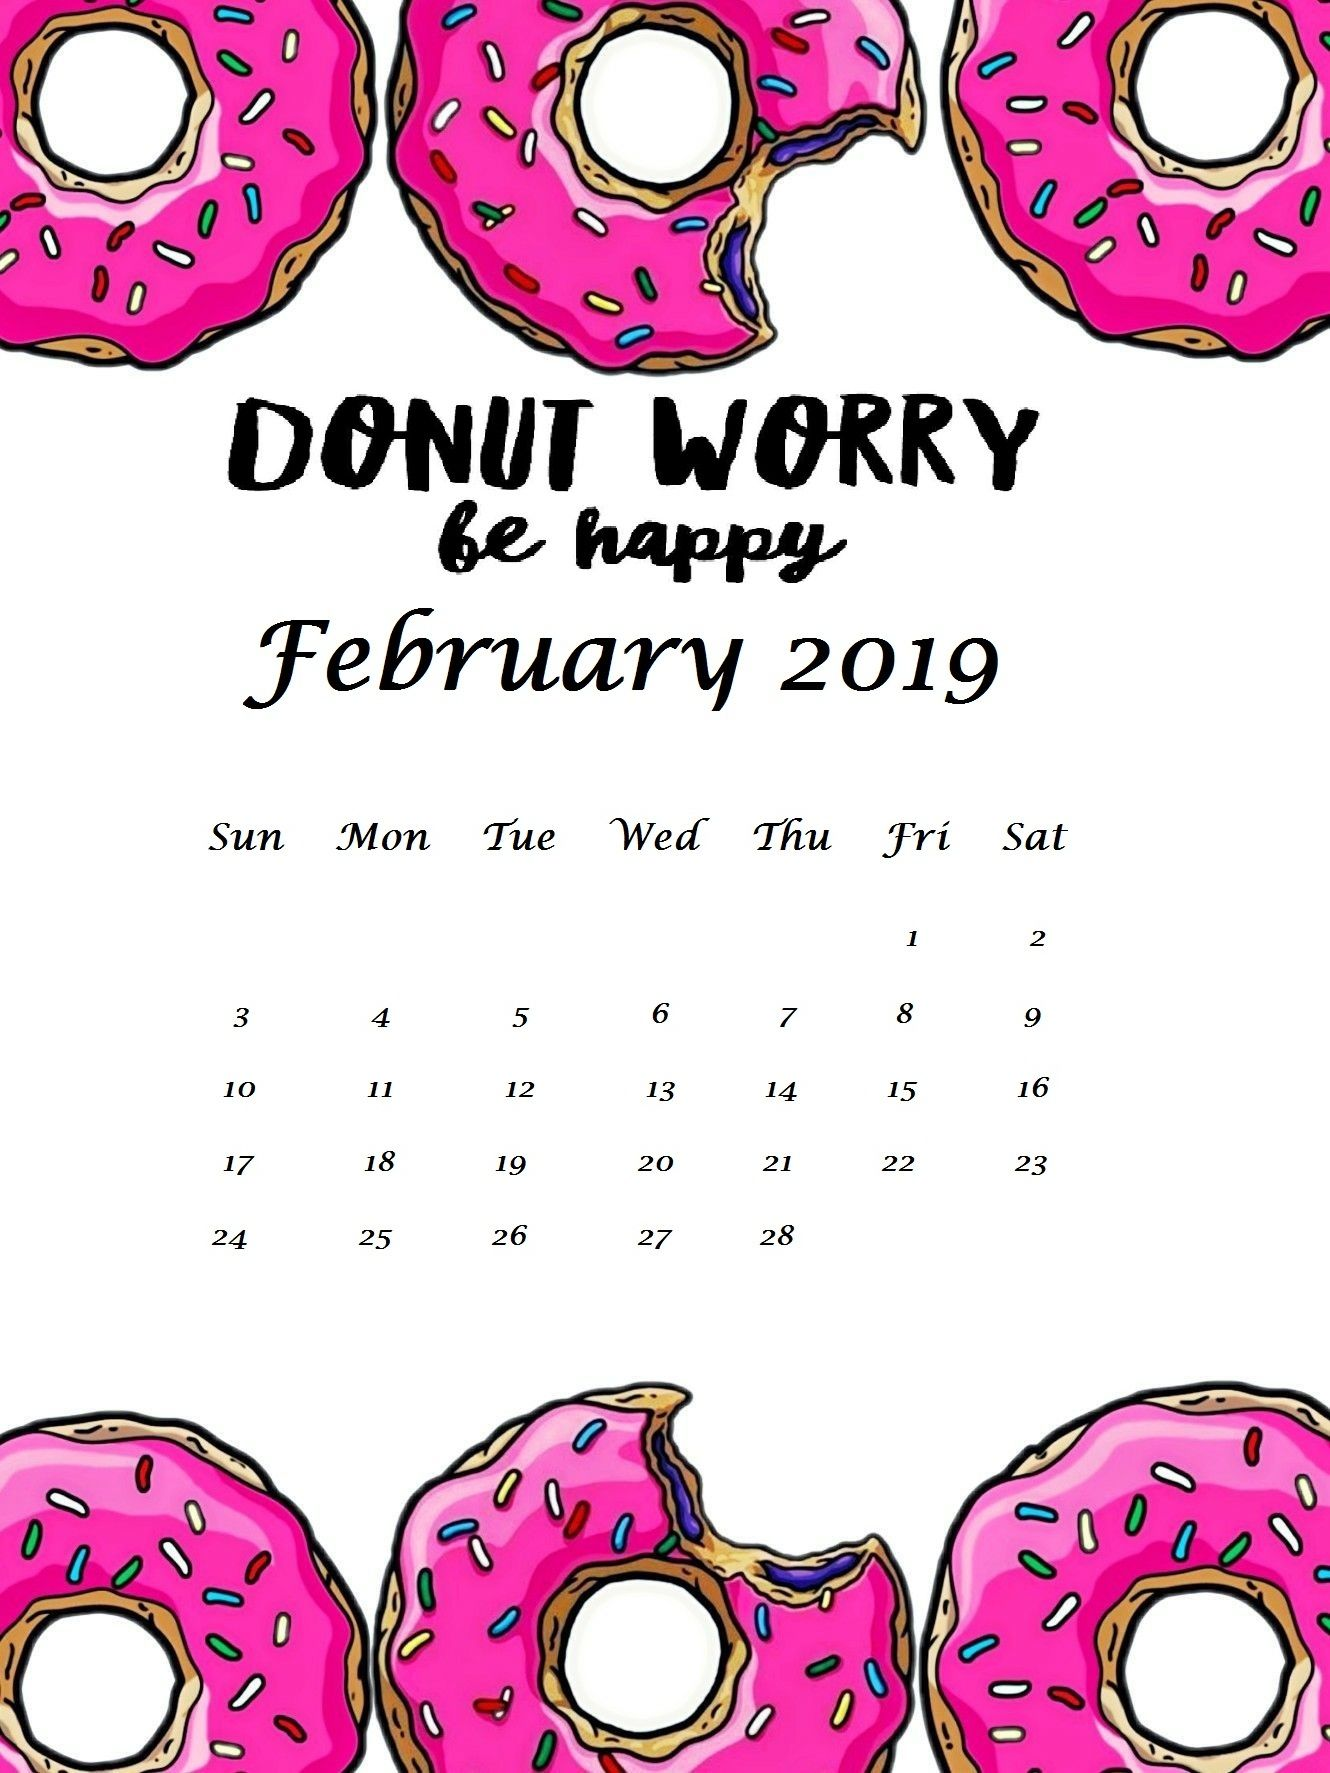 february 2019 quotes iphone wallpaper in 2019